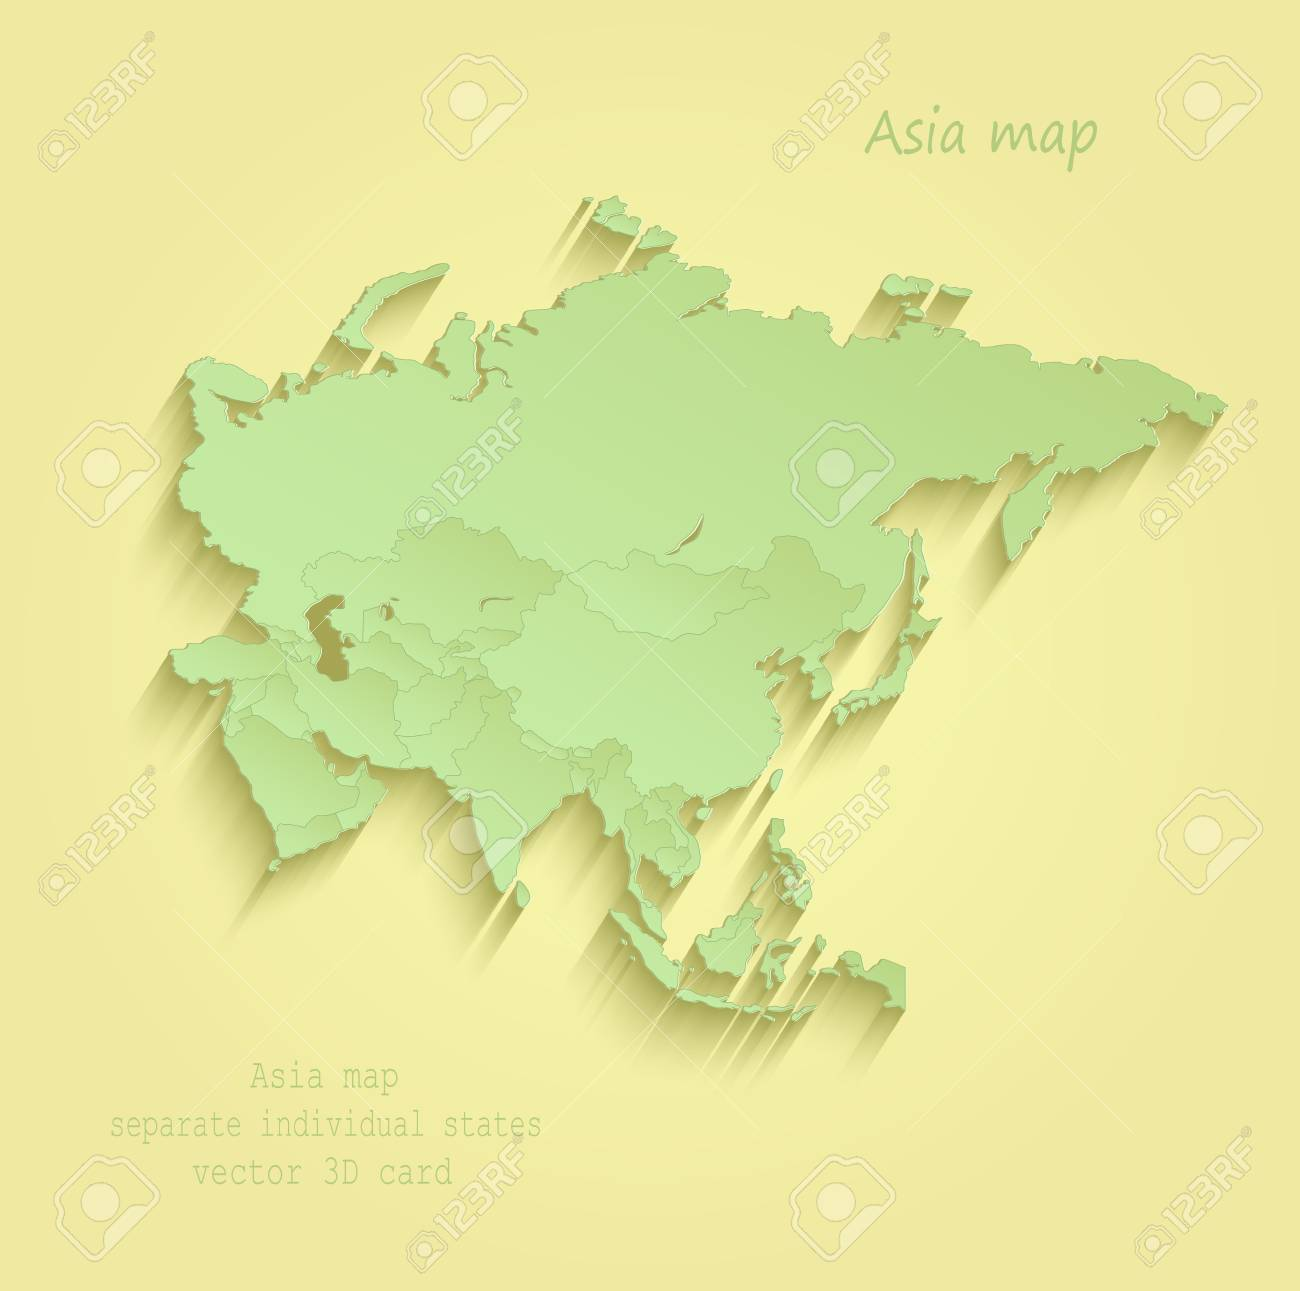 Asia map Separate Individual states yellow green vector - 73762089